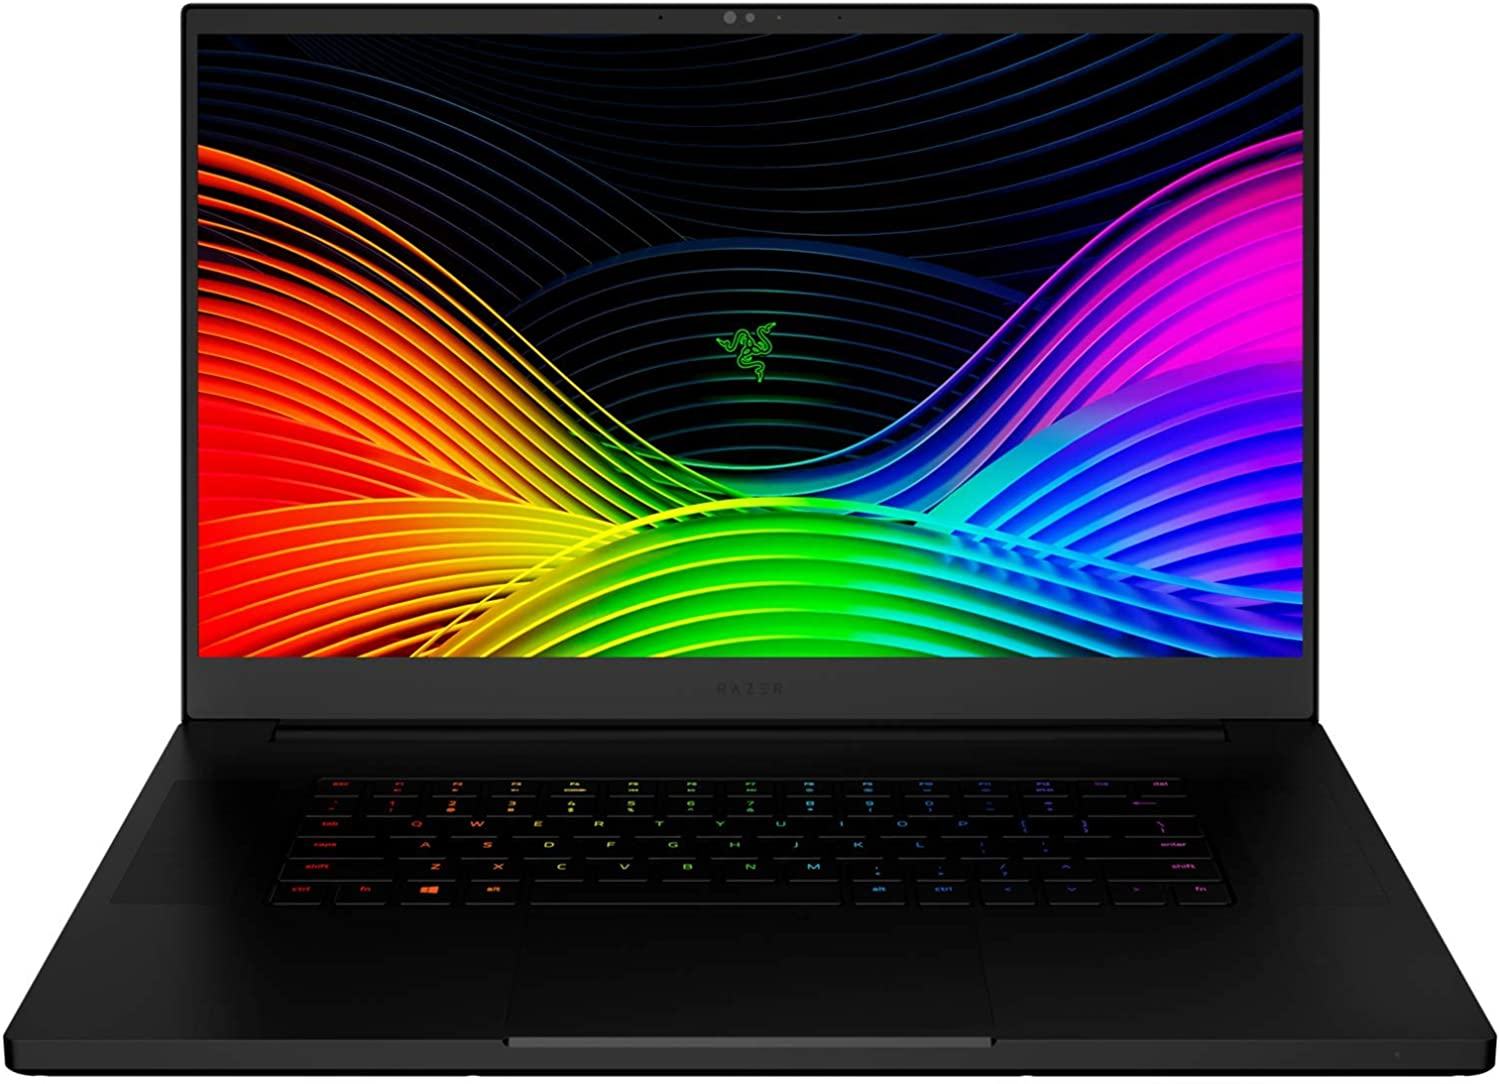 "Razer Blade Pro 17 Gaming Laptop 2019: Intel Core i7-9750H, NVIDIA GeForce RTX 2070 Max-Q, 17.3"" FHD 144hz, 16GB RAM, 512GB SSD, CNC Aluminum, Chroma RGB Lighting, Thunderbolt 3, SD Card Reader"